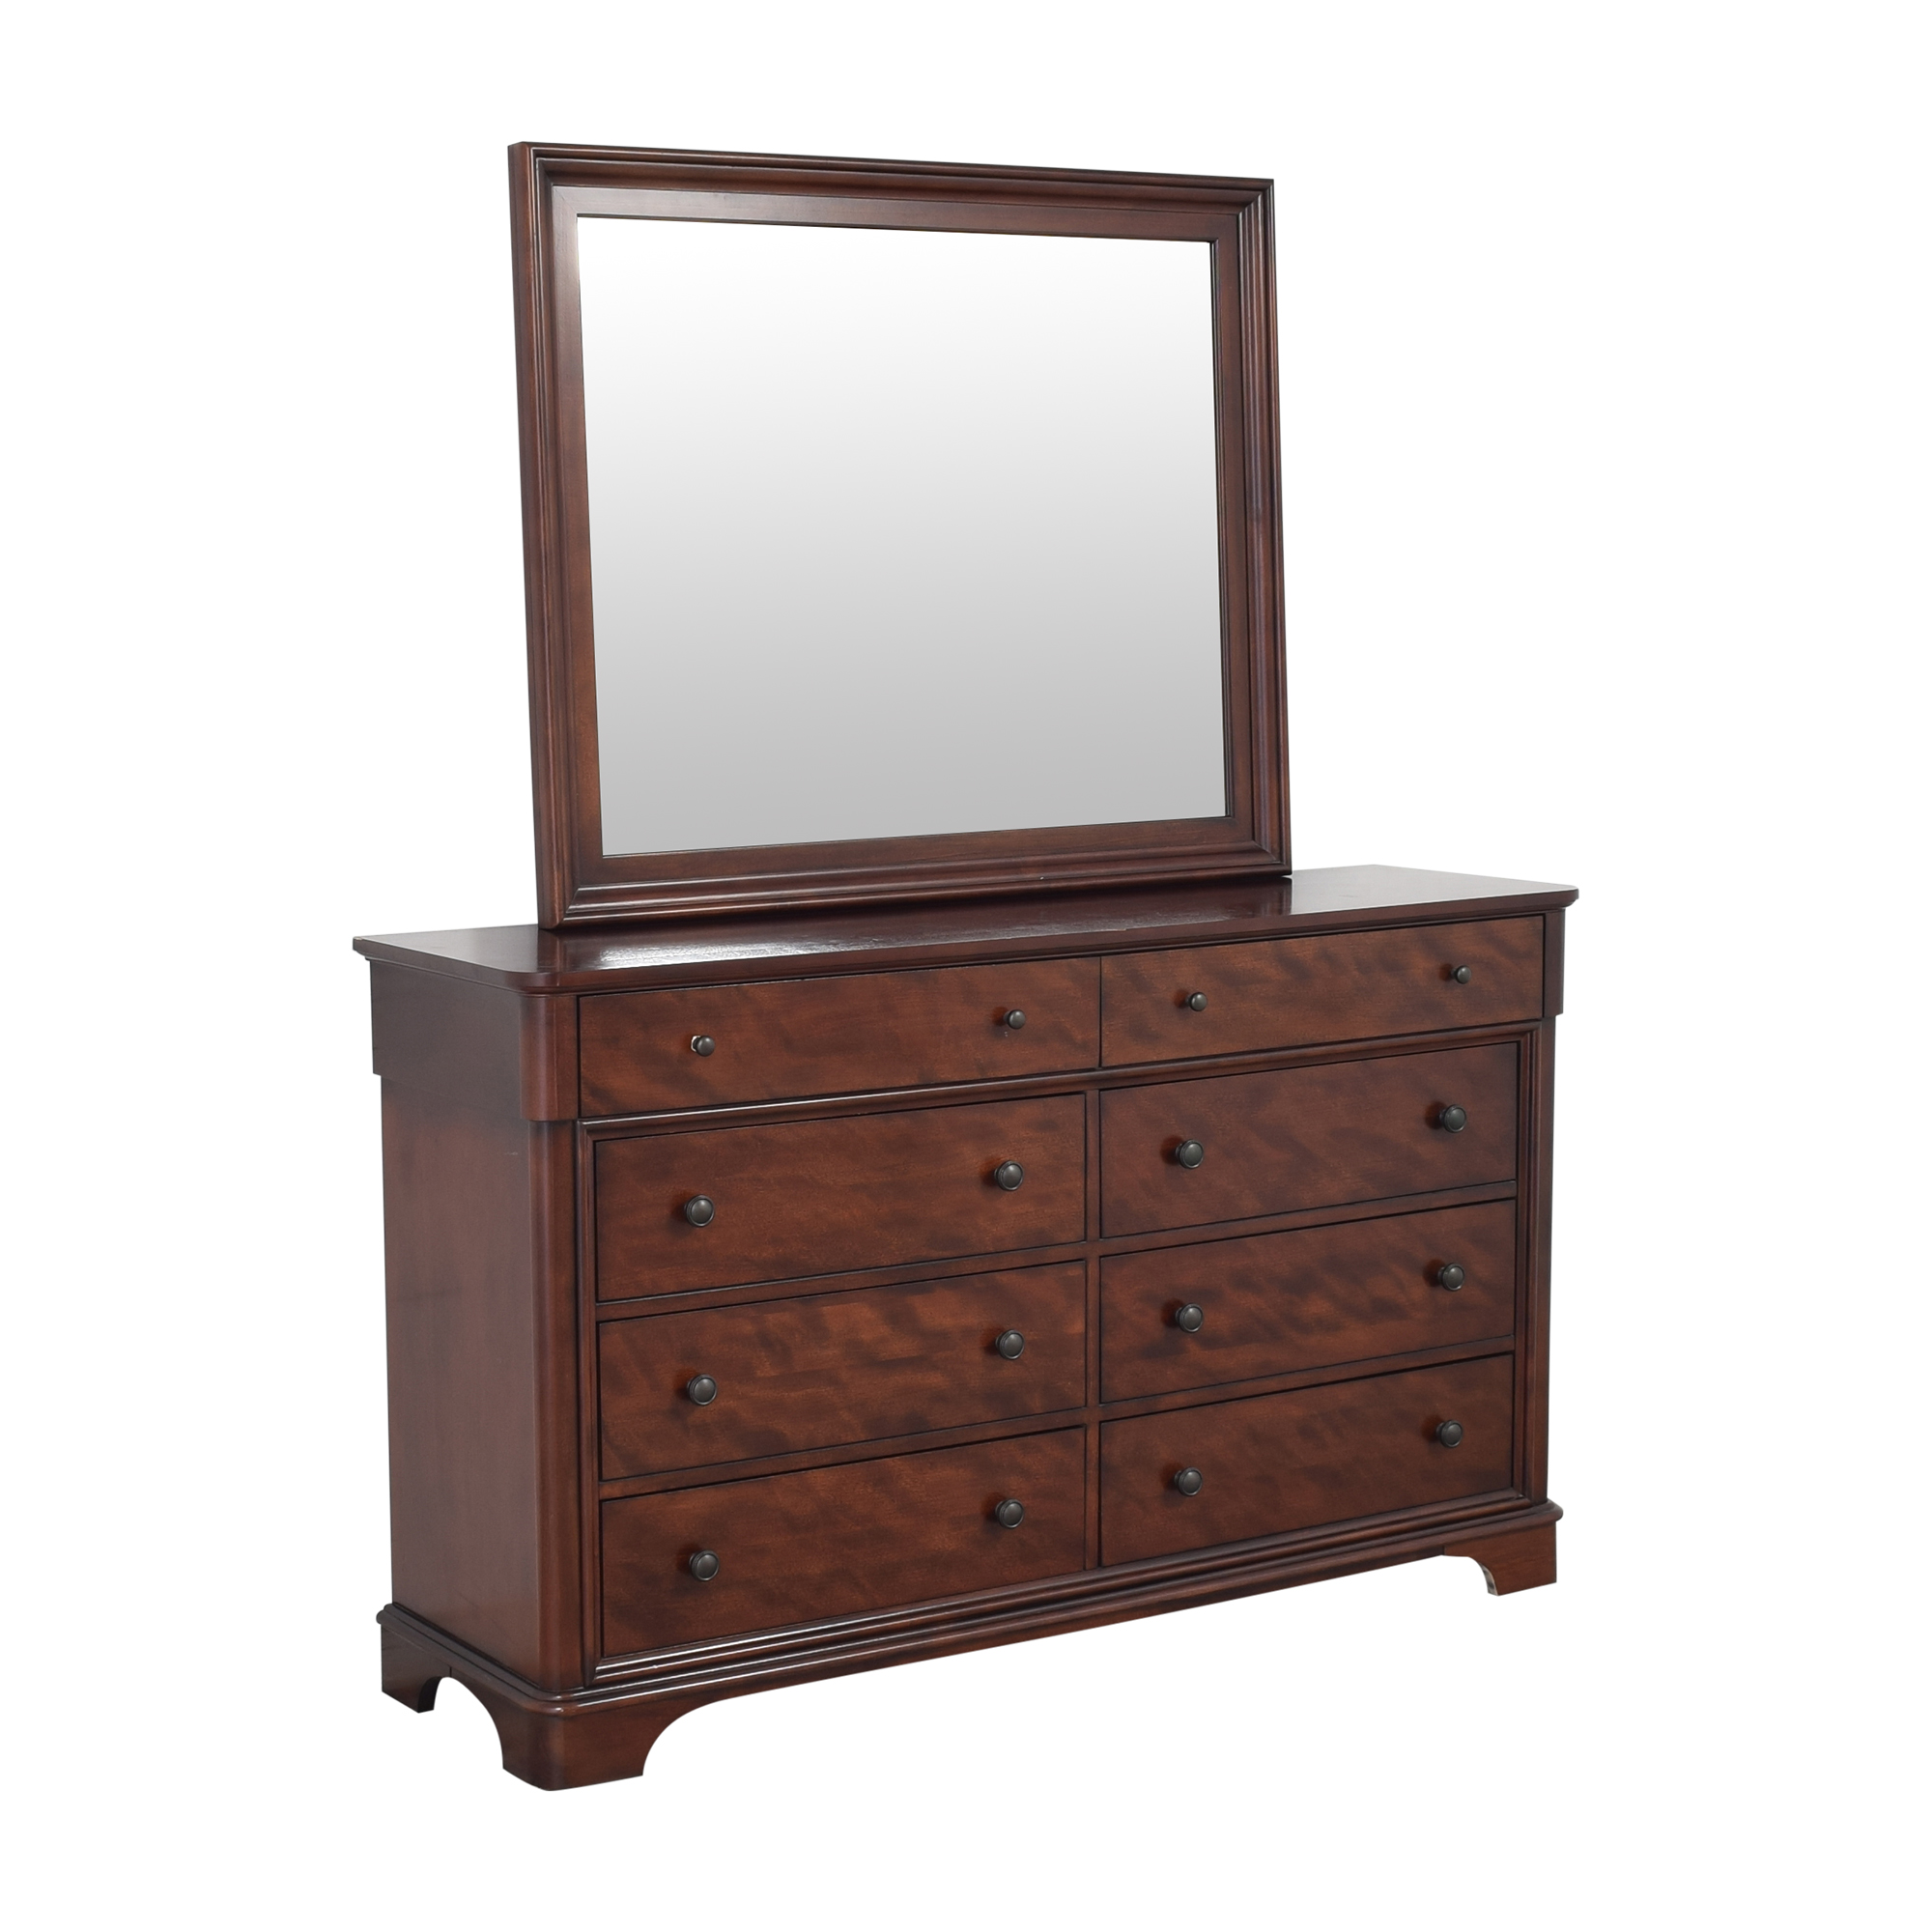 Legacy Classic Furniture Legacy Classic Furniture Double Dresser with Mirror dimensions